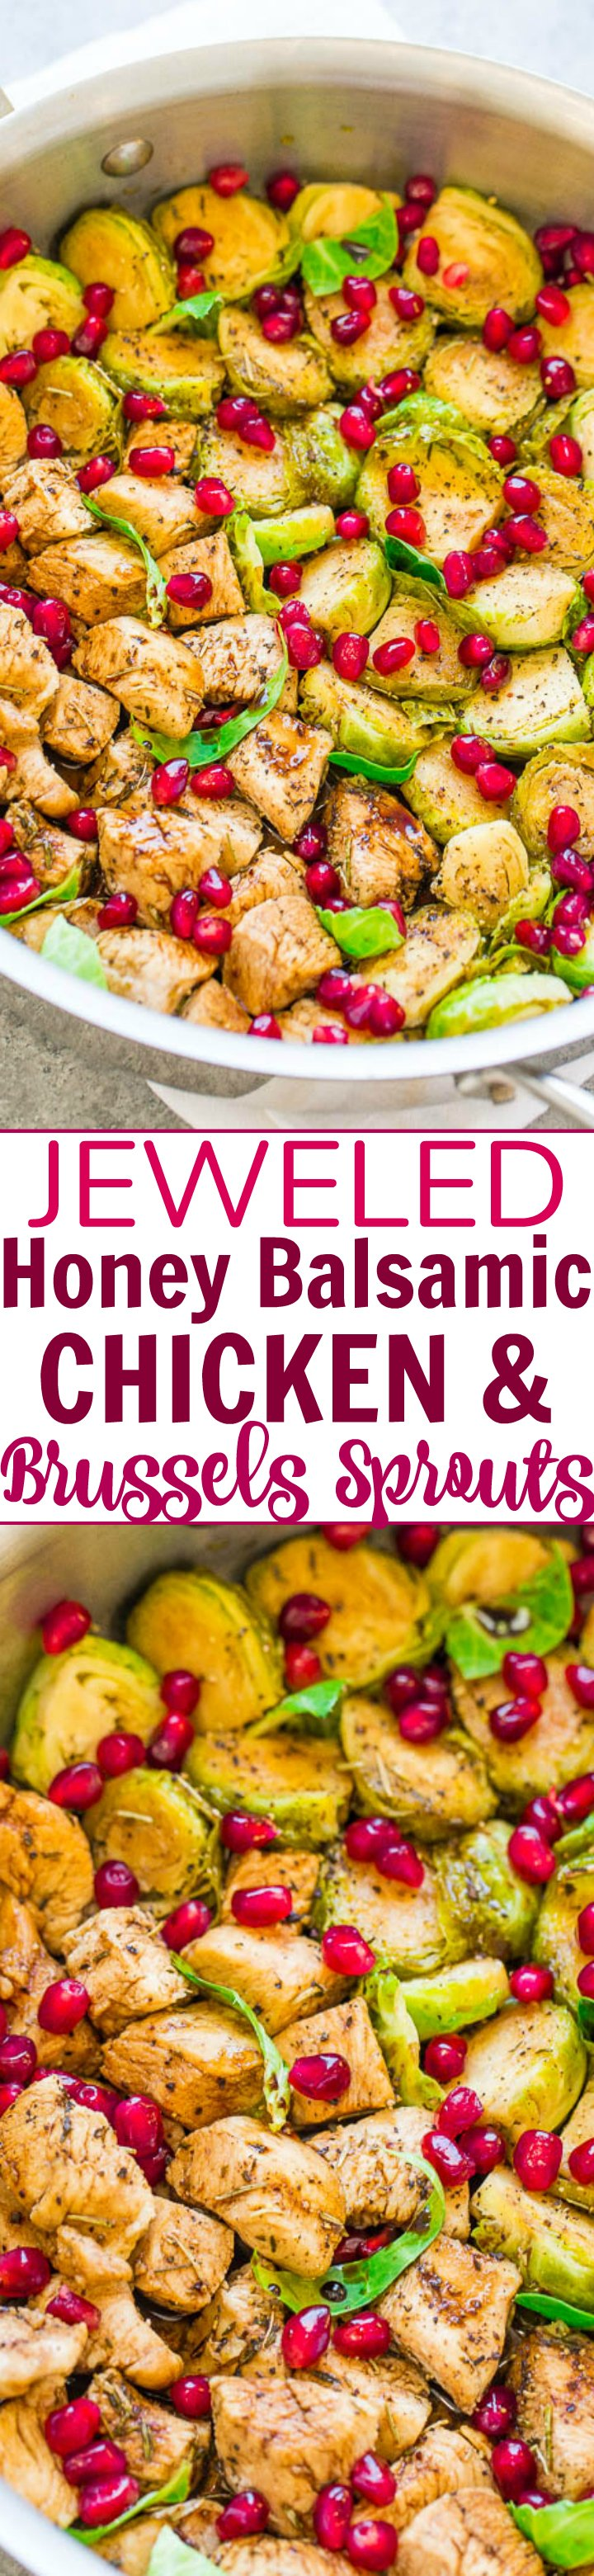 Jeweled Honey Balsamic Chicken and Brussels Sprouts - EASY, one-skillet, healthy, ready in 15 minutes, and loaded with FALL FLAVORS!! Juicy chicken, crisp-tender sprouts, tangy balsamic, sweet honey, and seasoned to perfection!!